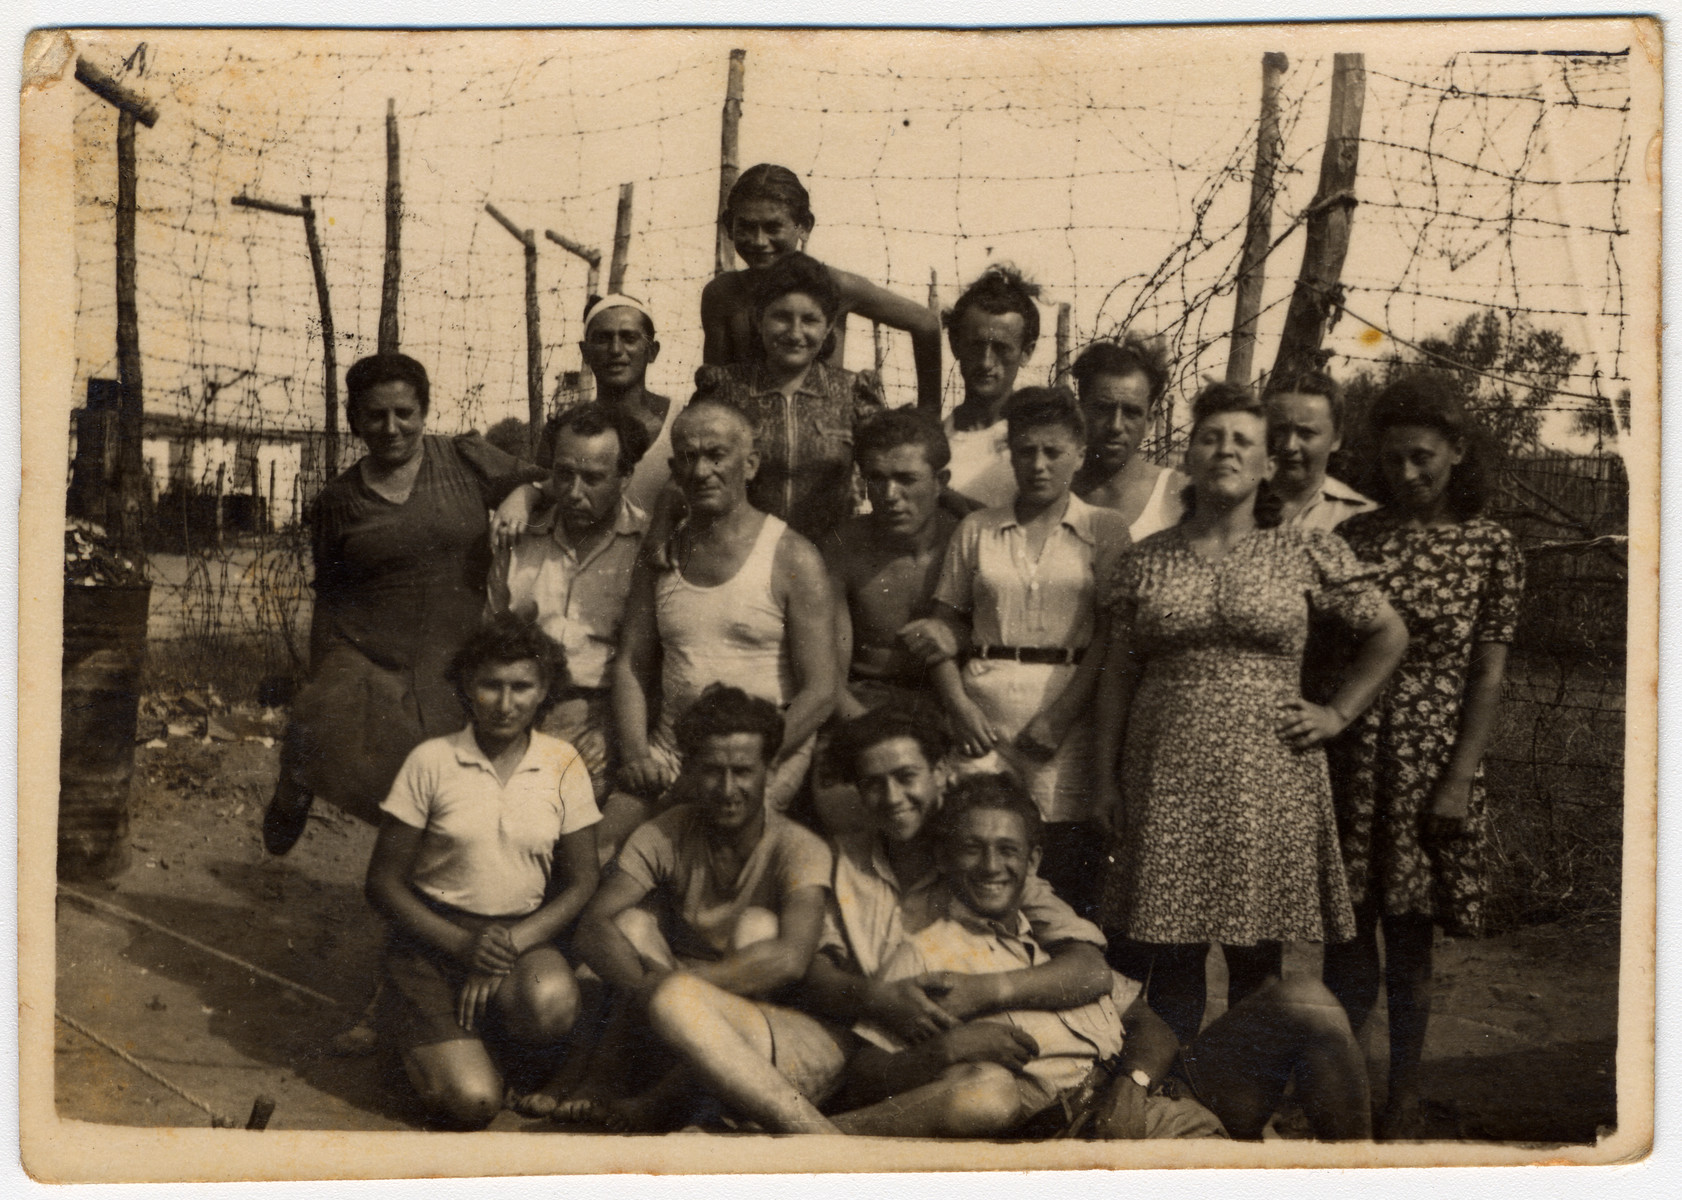 Group portrait of Jewish DPs posing in front of a barbed fence at an internment  camp in Cyprus.